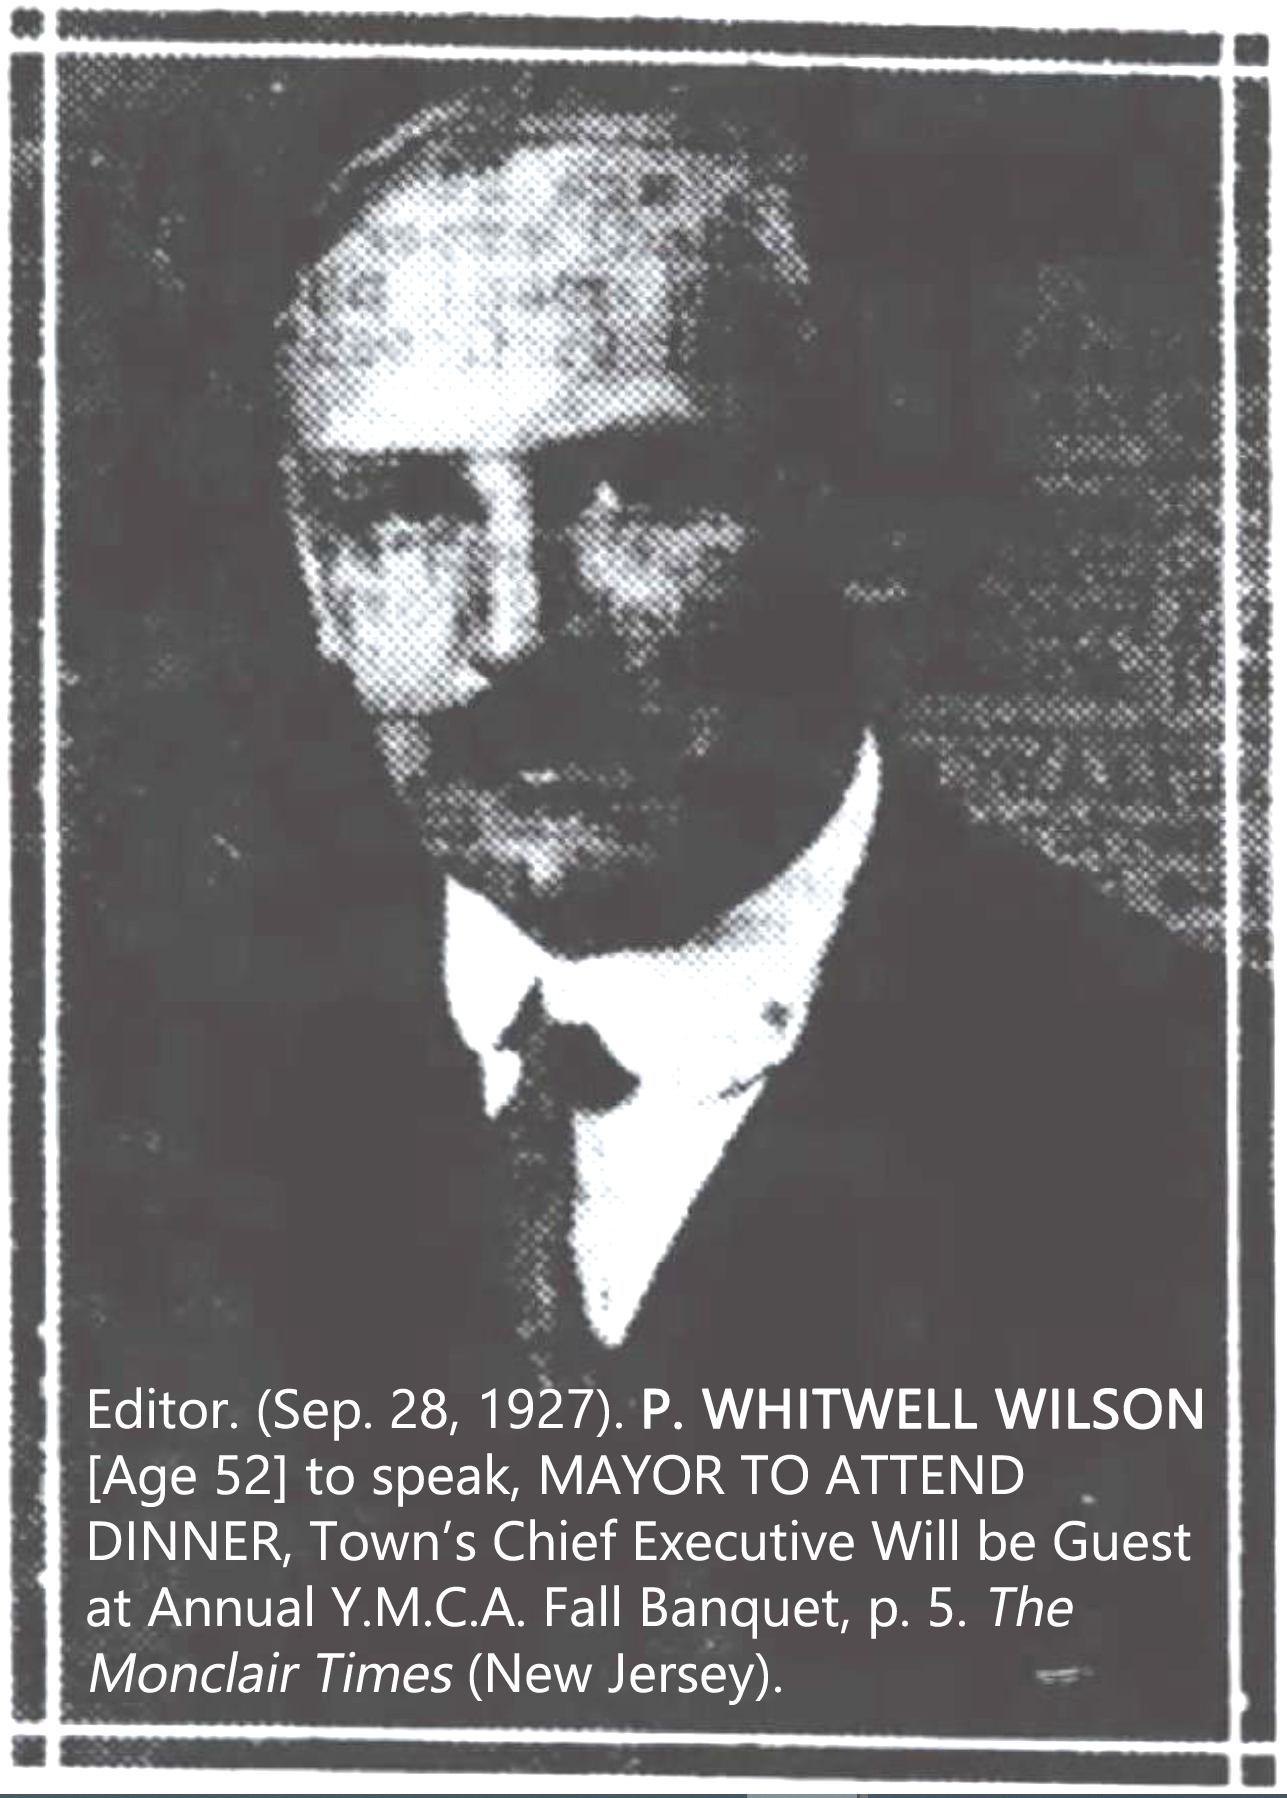 Editor. (Sep. 28, 1927). P. WHITWELL WILSON [Age 52] to speak, MAYOR TO ATTEND DINNER, Town's Chief Executive Will be Guest at Annual Y.M.C.A. Fall Banquet, p. 5. The Montclair Times (New Jersey).